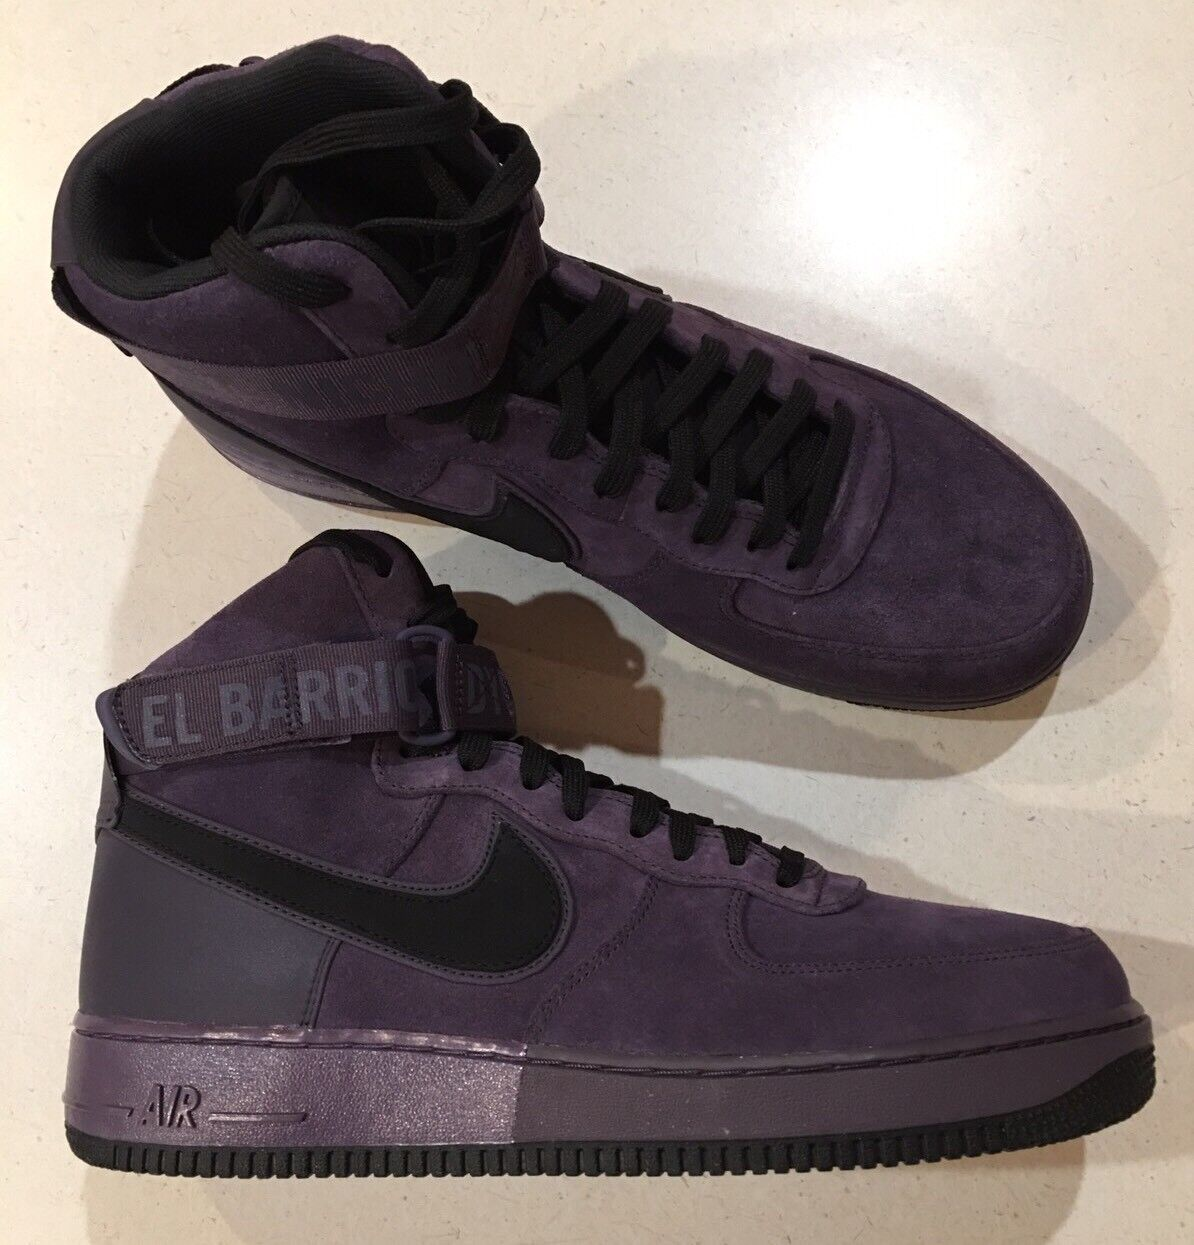 Nike Air Force 1 High '07 Harlem Uptown QS shoes -Size 11 -573967 500 New